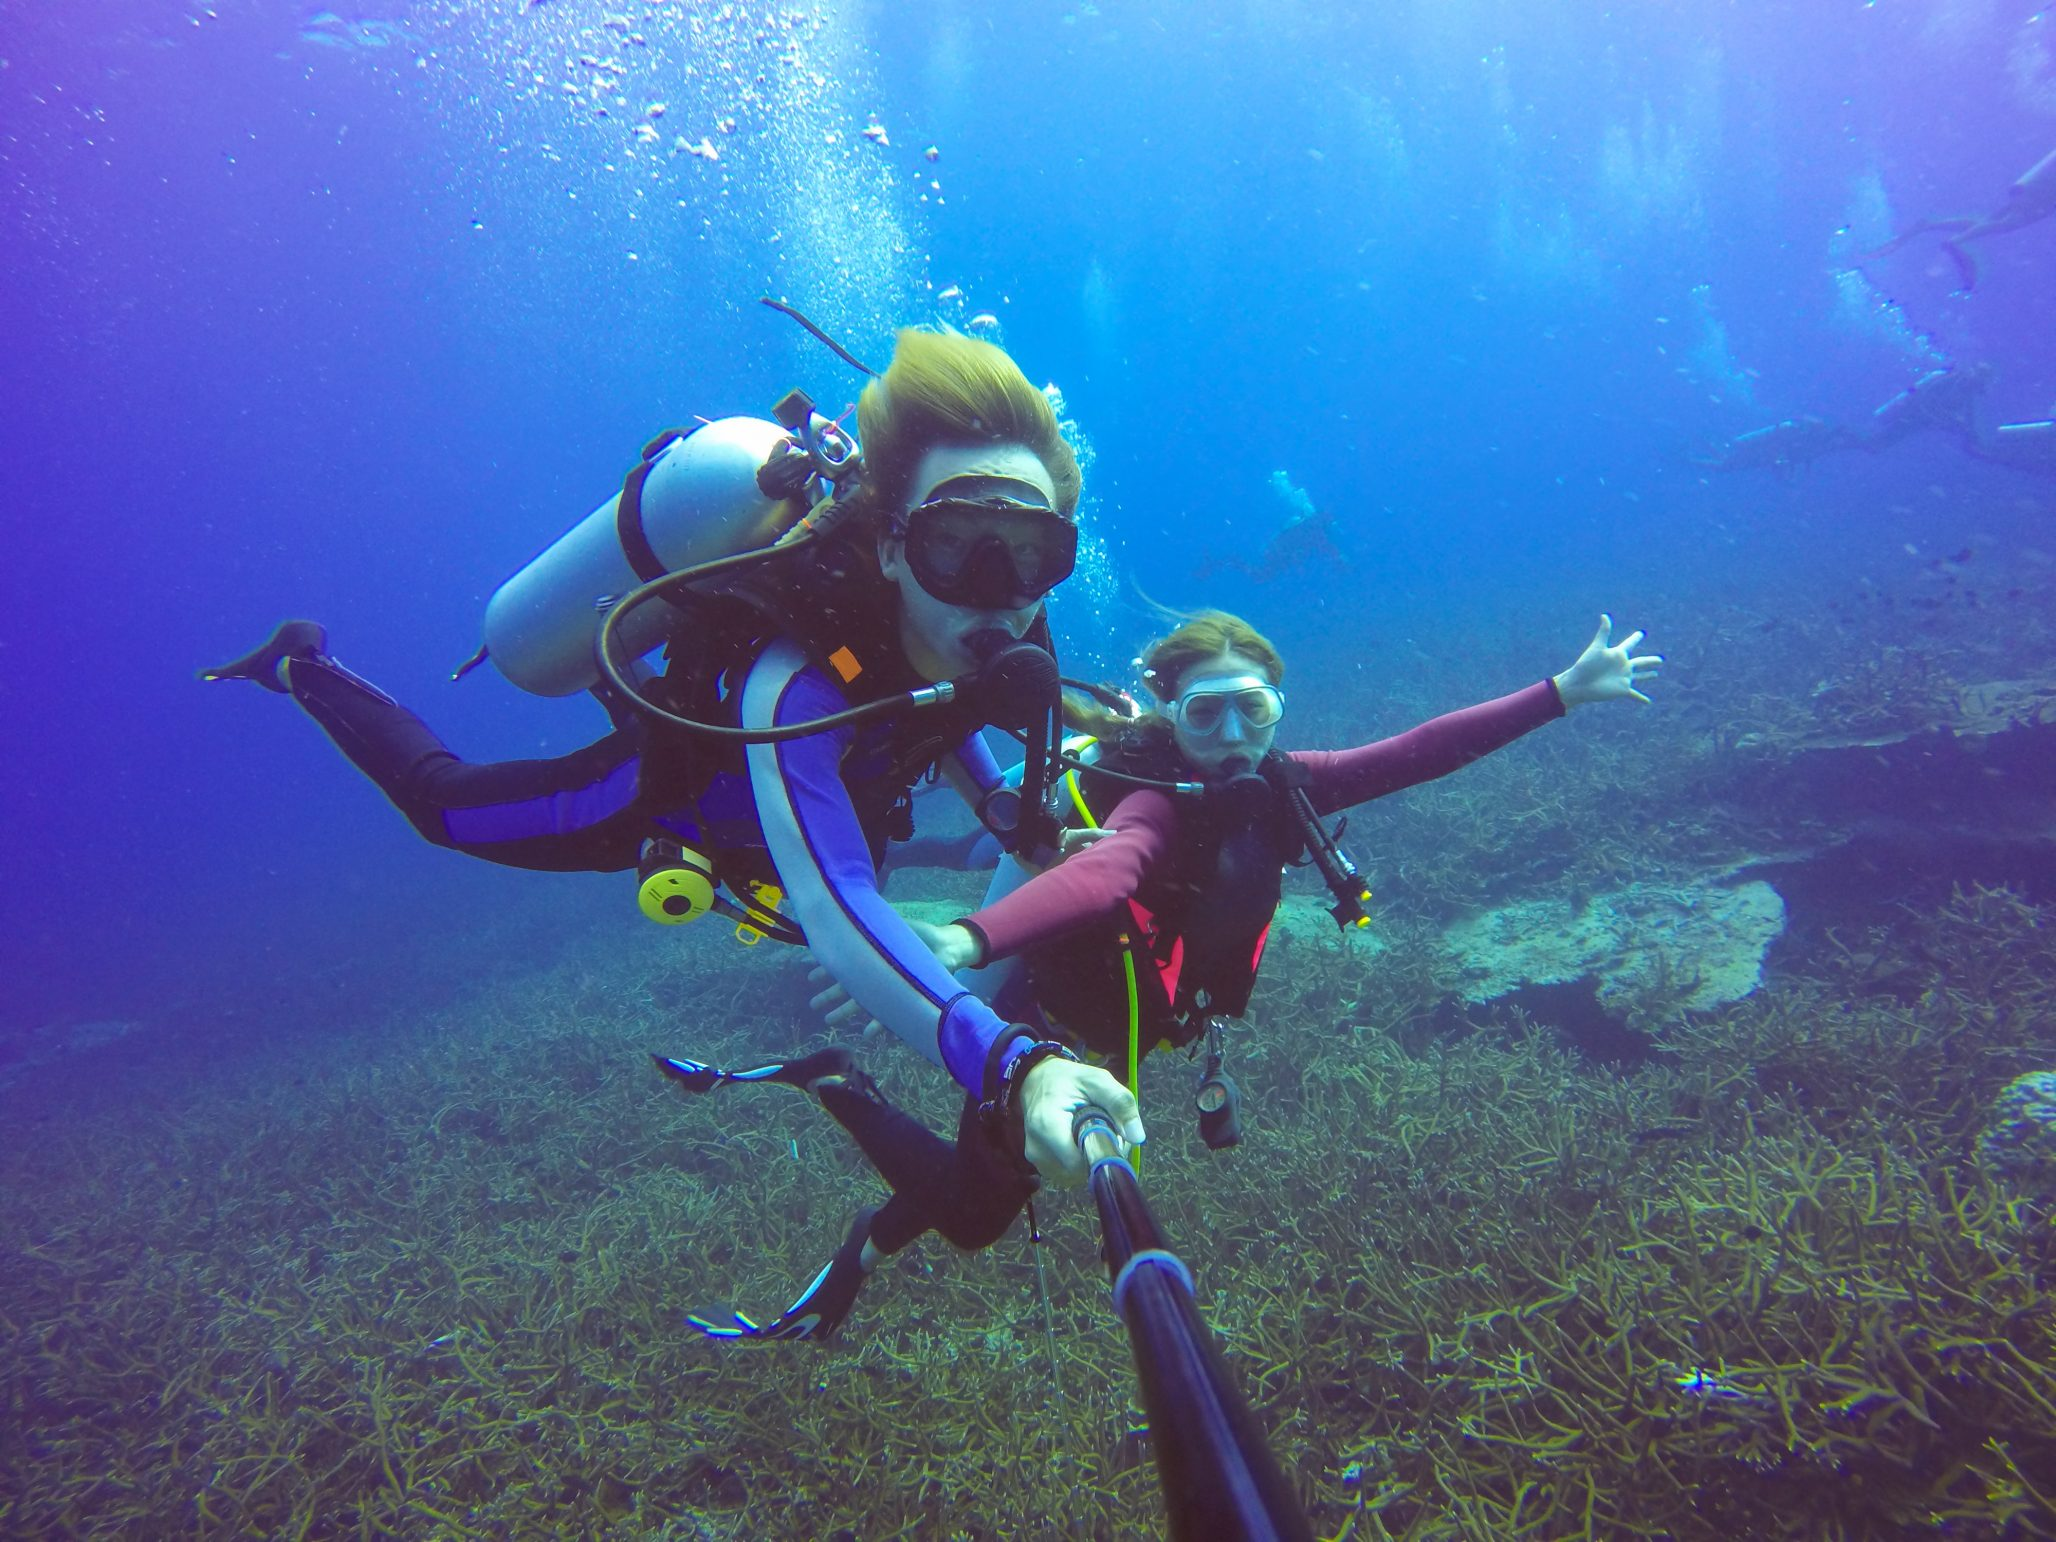 scuba diving holiday in malta - selfie video stick